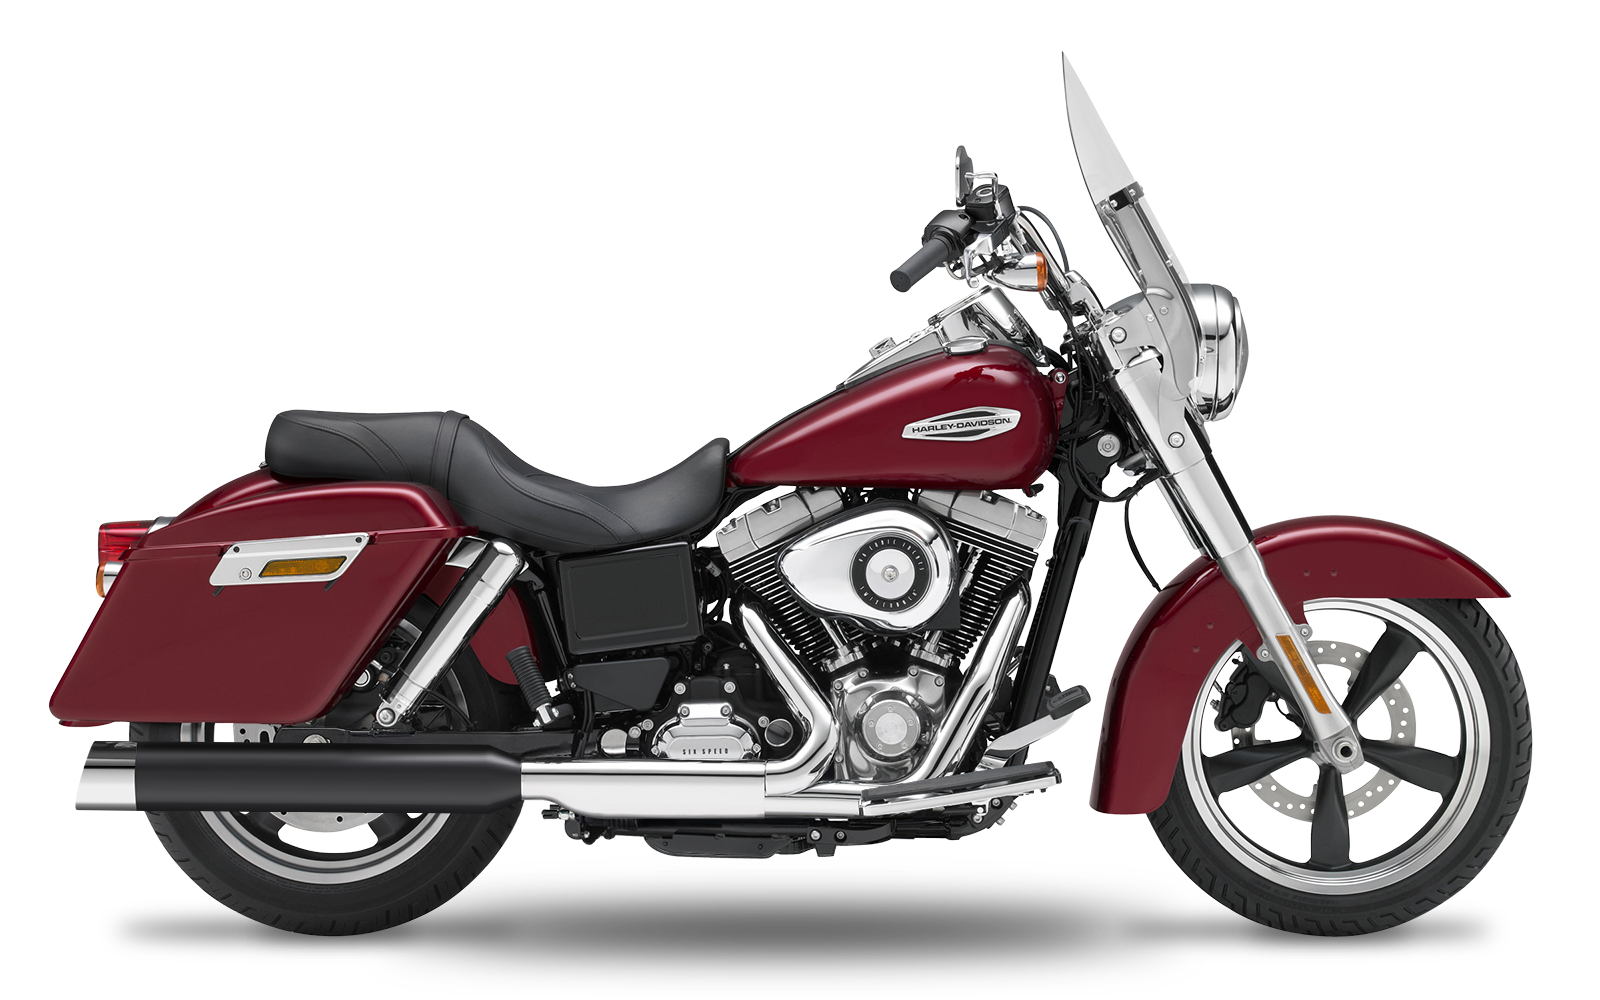 Dyna - Switchback - TC103 - 2012-2016 - Endtöpfe